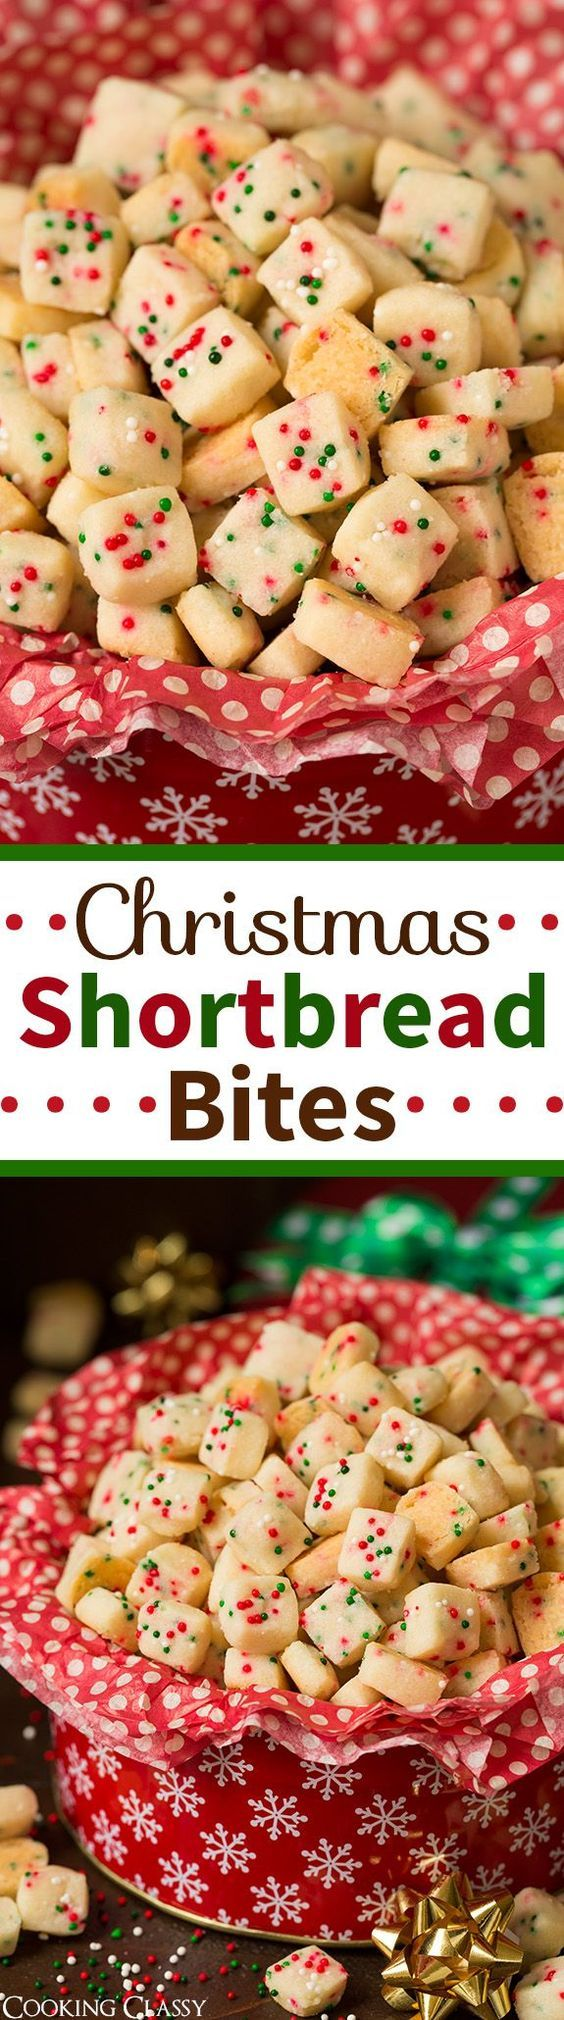 Christmas Shortbread Bites - these are the most pop-able fun to eat cookies out there! Perfect for the holidays! More holiday diy ideas at #lorisgolfshoppe